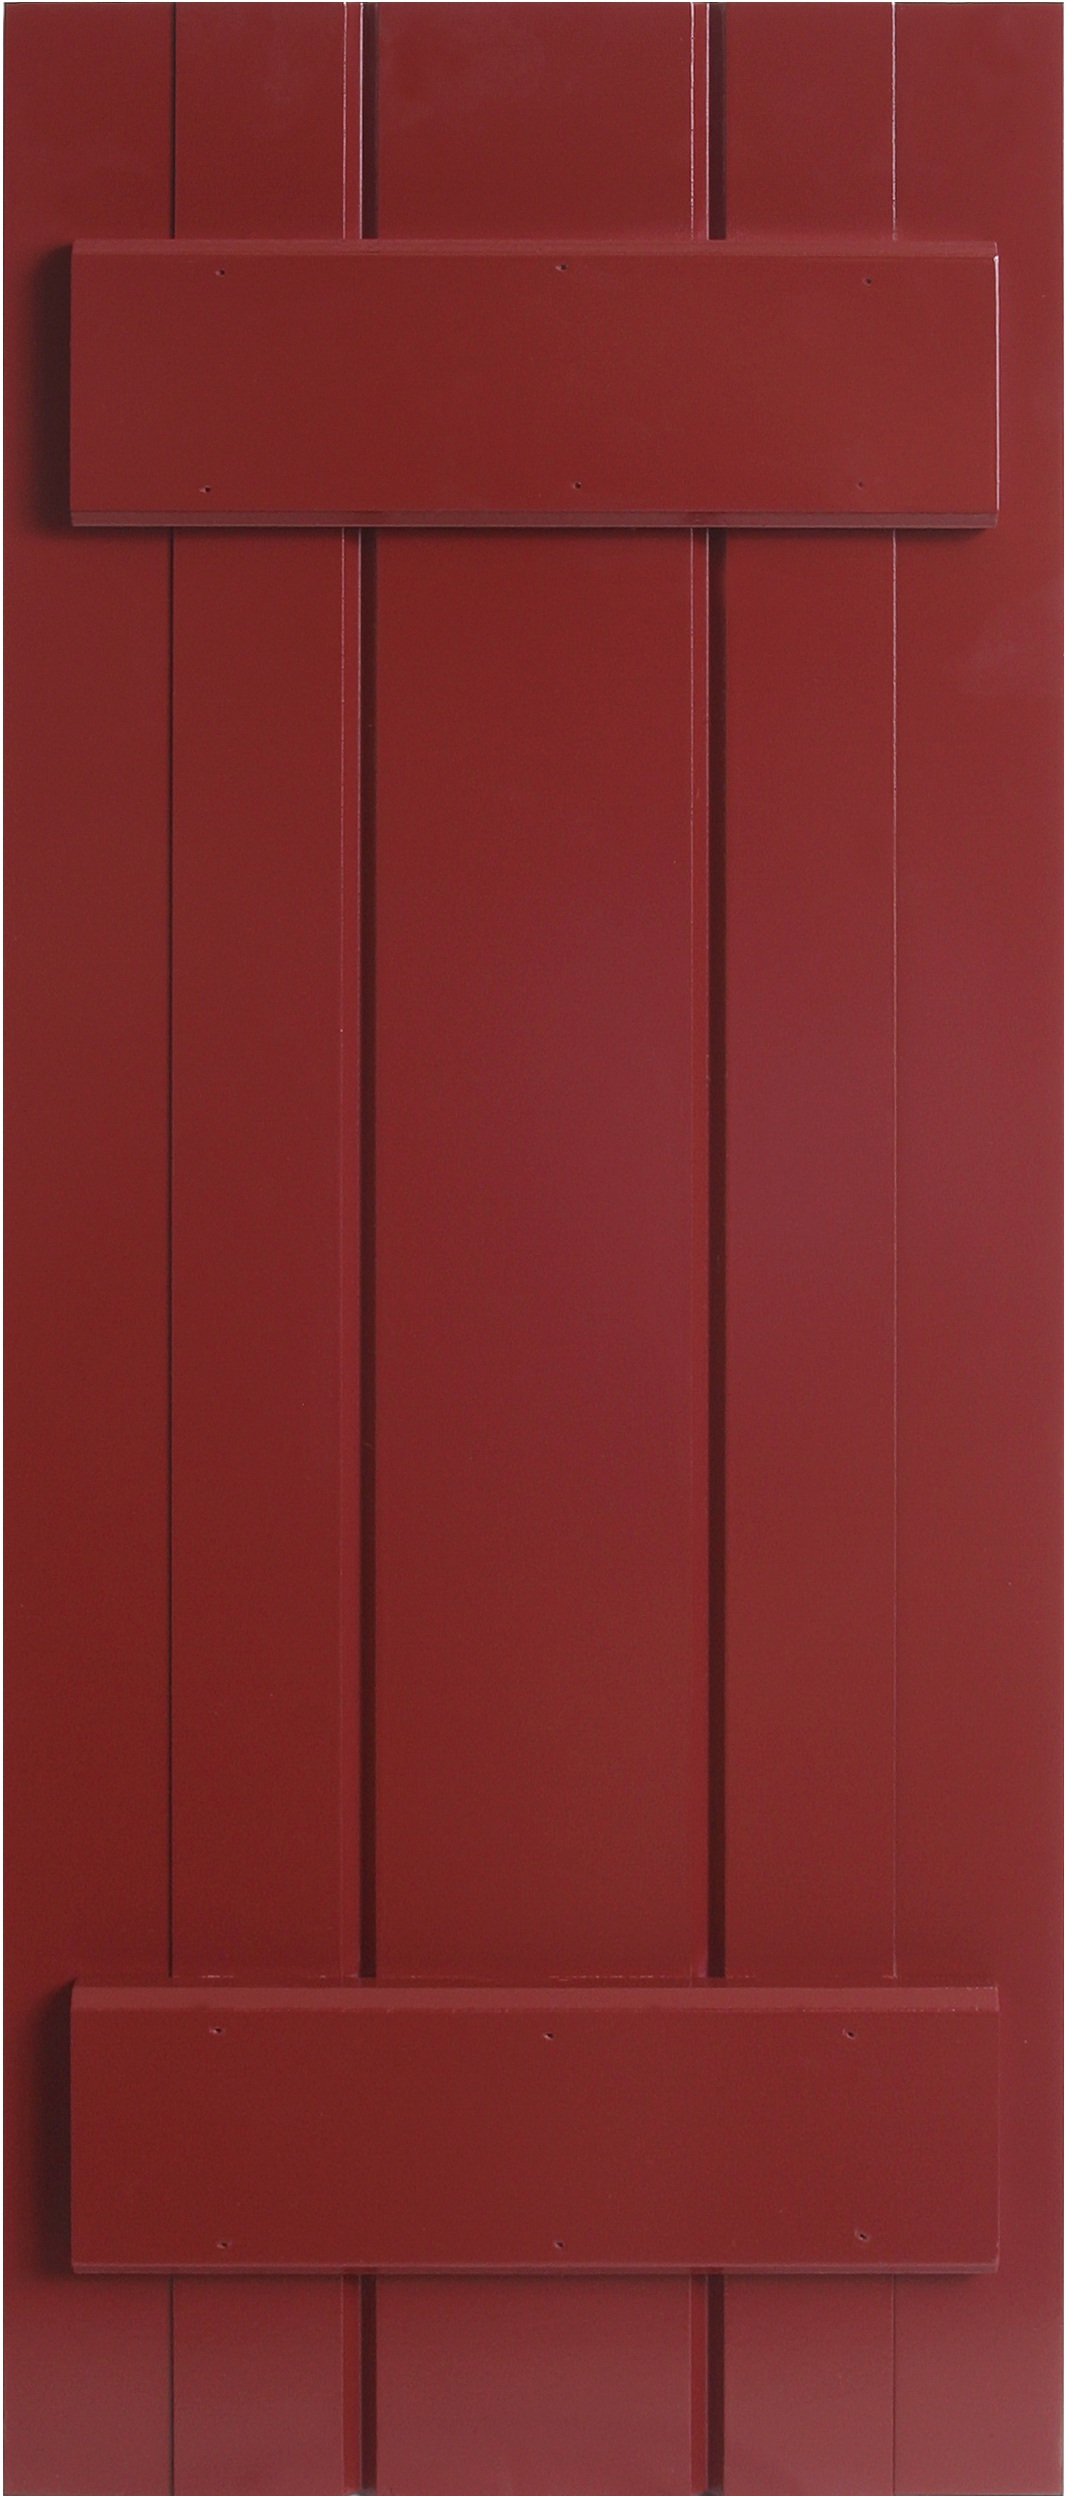 Pvc composite shutters from custom shutter company - Composite board and batten exterior shutters ...